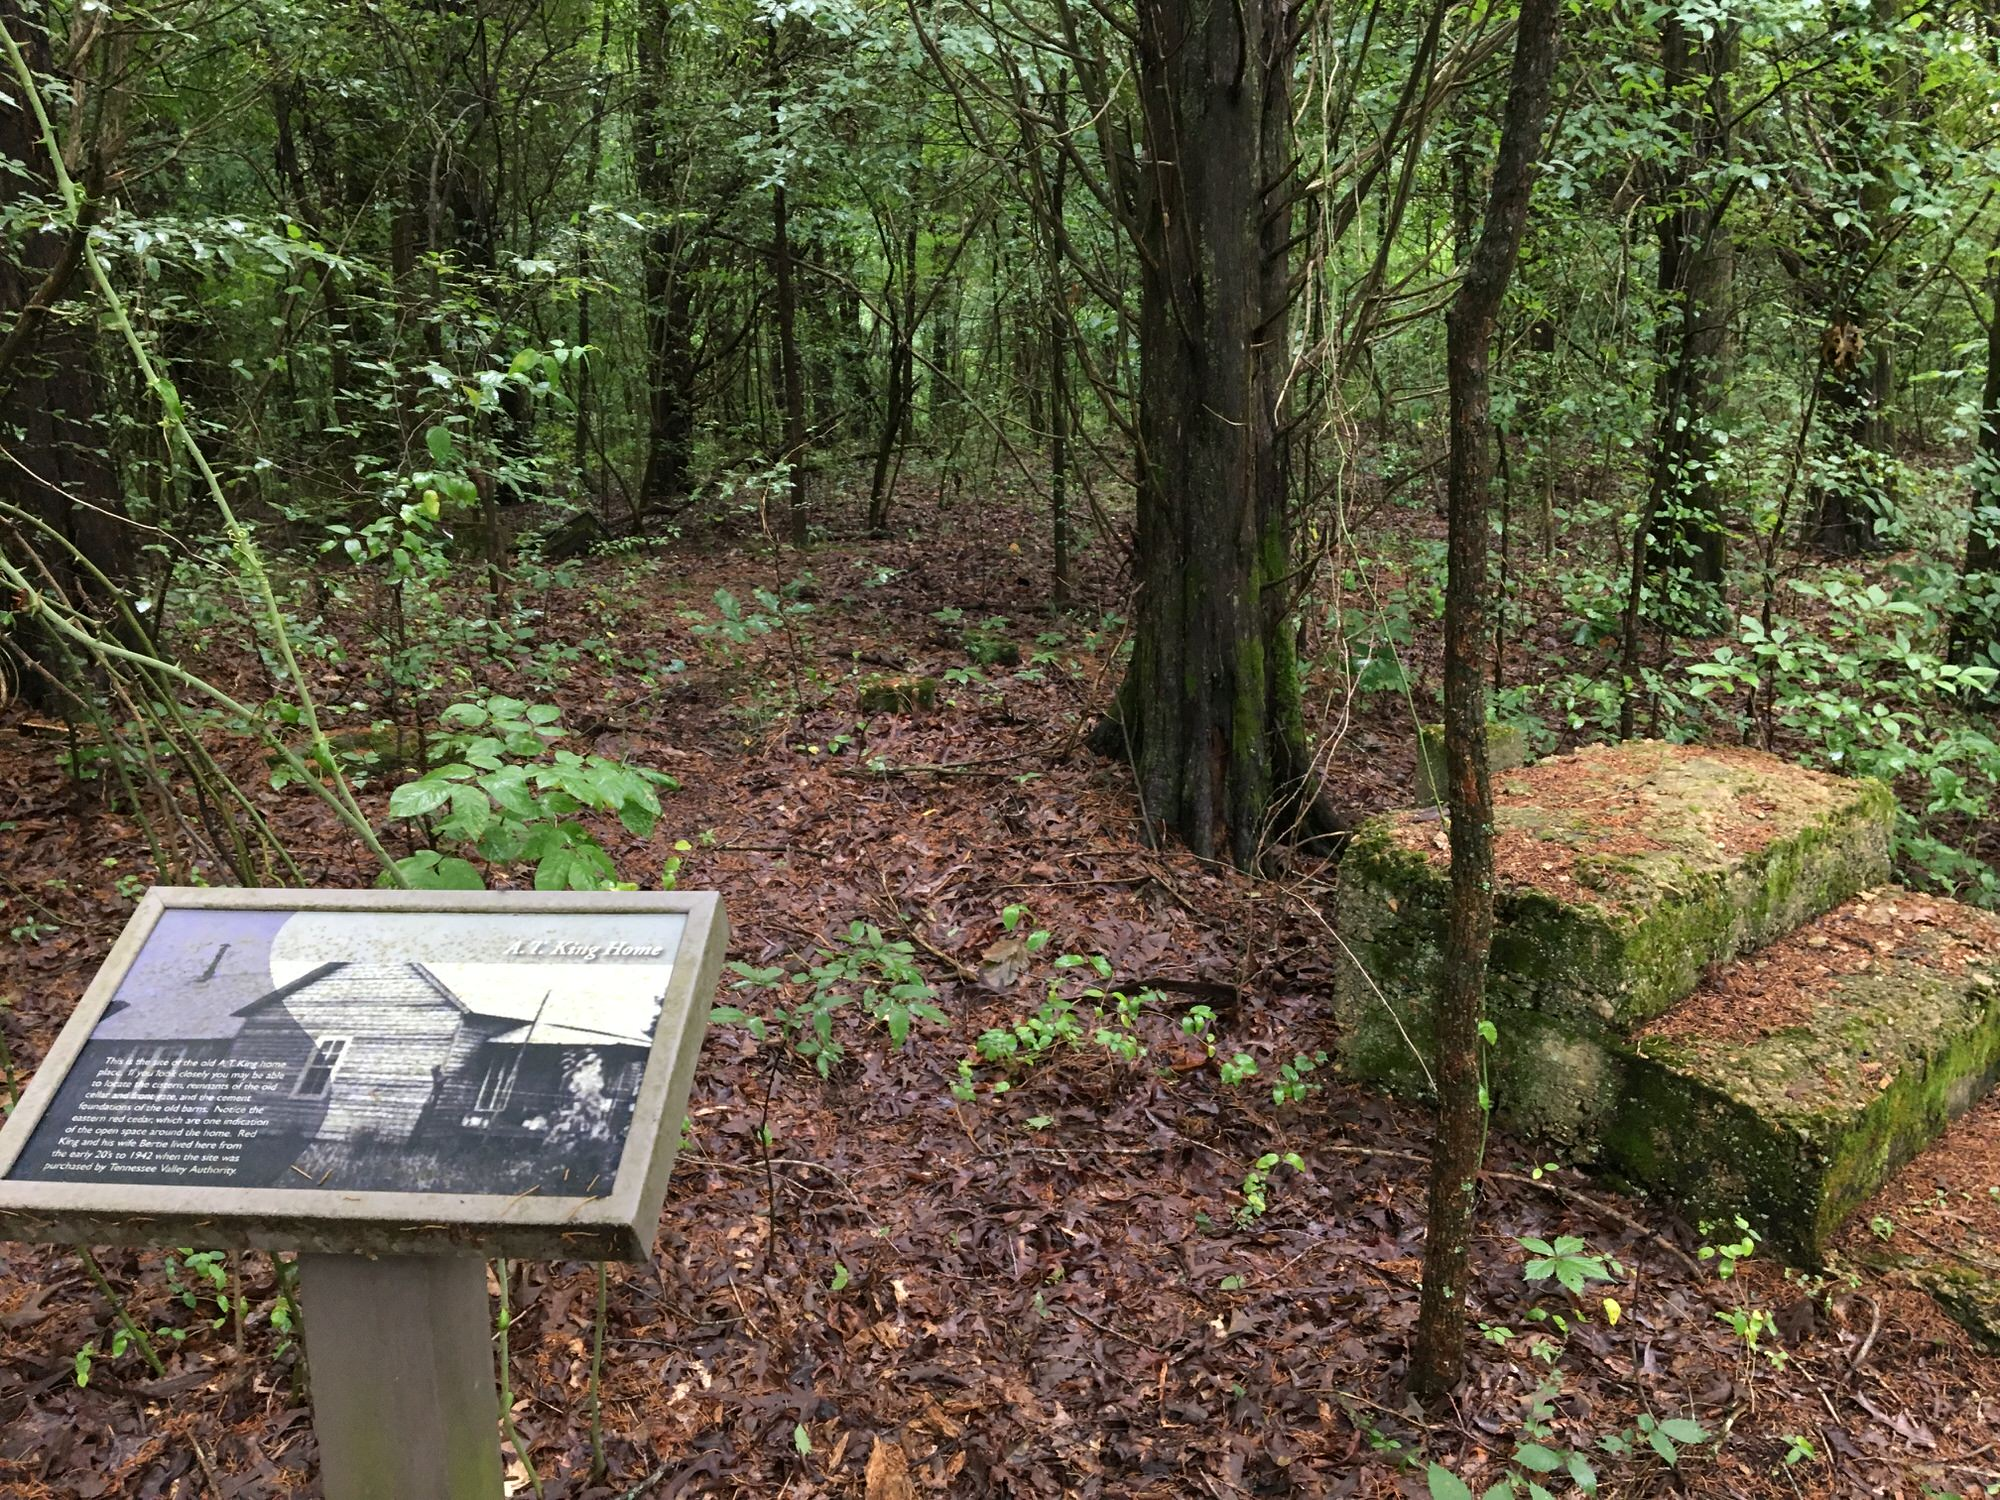 photo: The nature trail features interpretative signs that point out former grist mill and home sites. Photo by Donna Kridelbaugh.